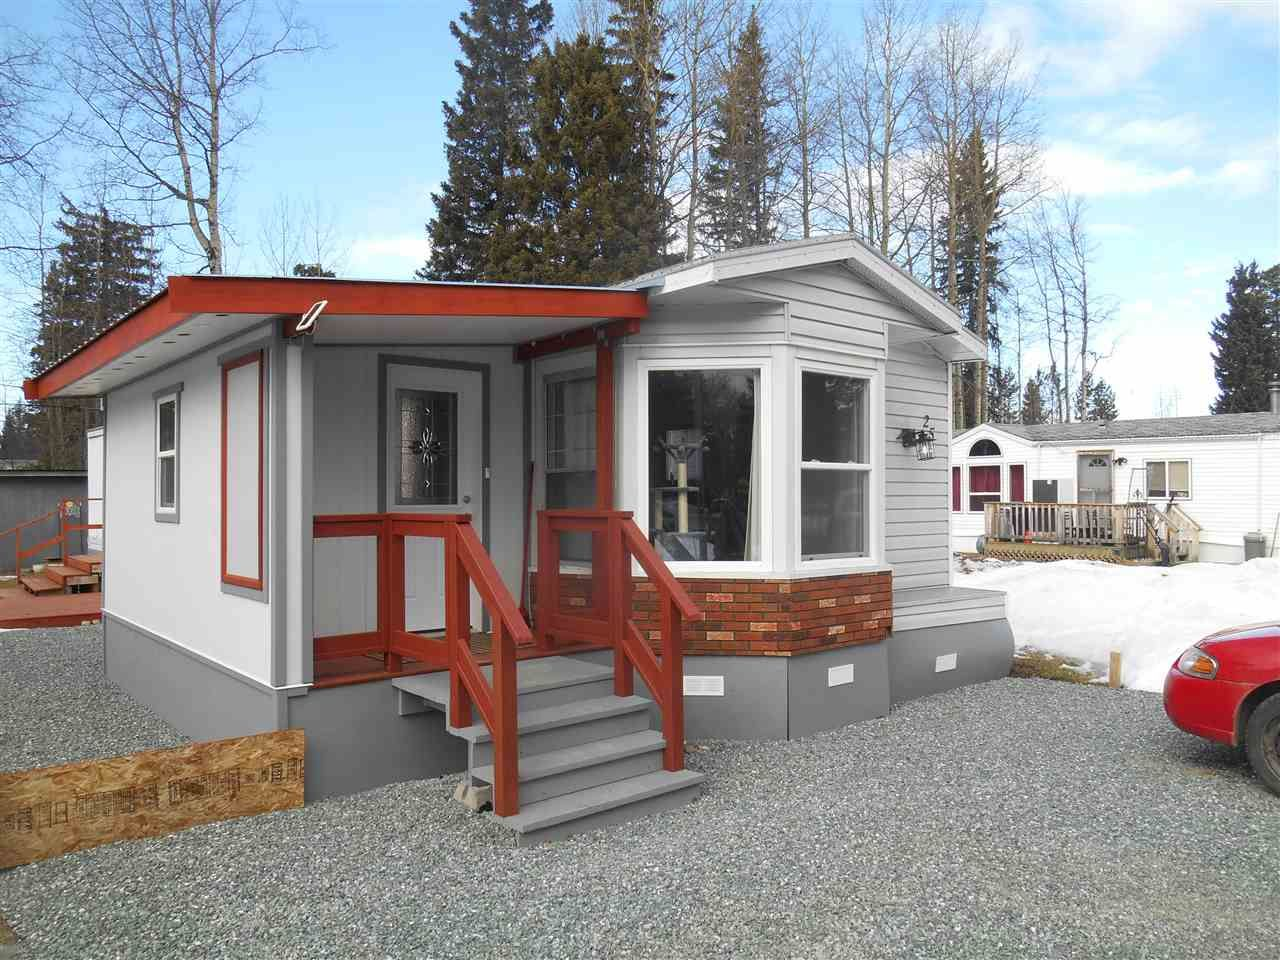 """Main Photo: 25 8474 BUNCE Road in Prince George: Haldi Manufactured Home for sale in """"TRAILER VILLAGE"""" (PG City South (Zone 74))  : MLS®# R2147074"""